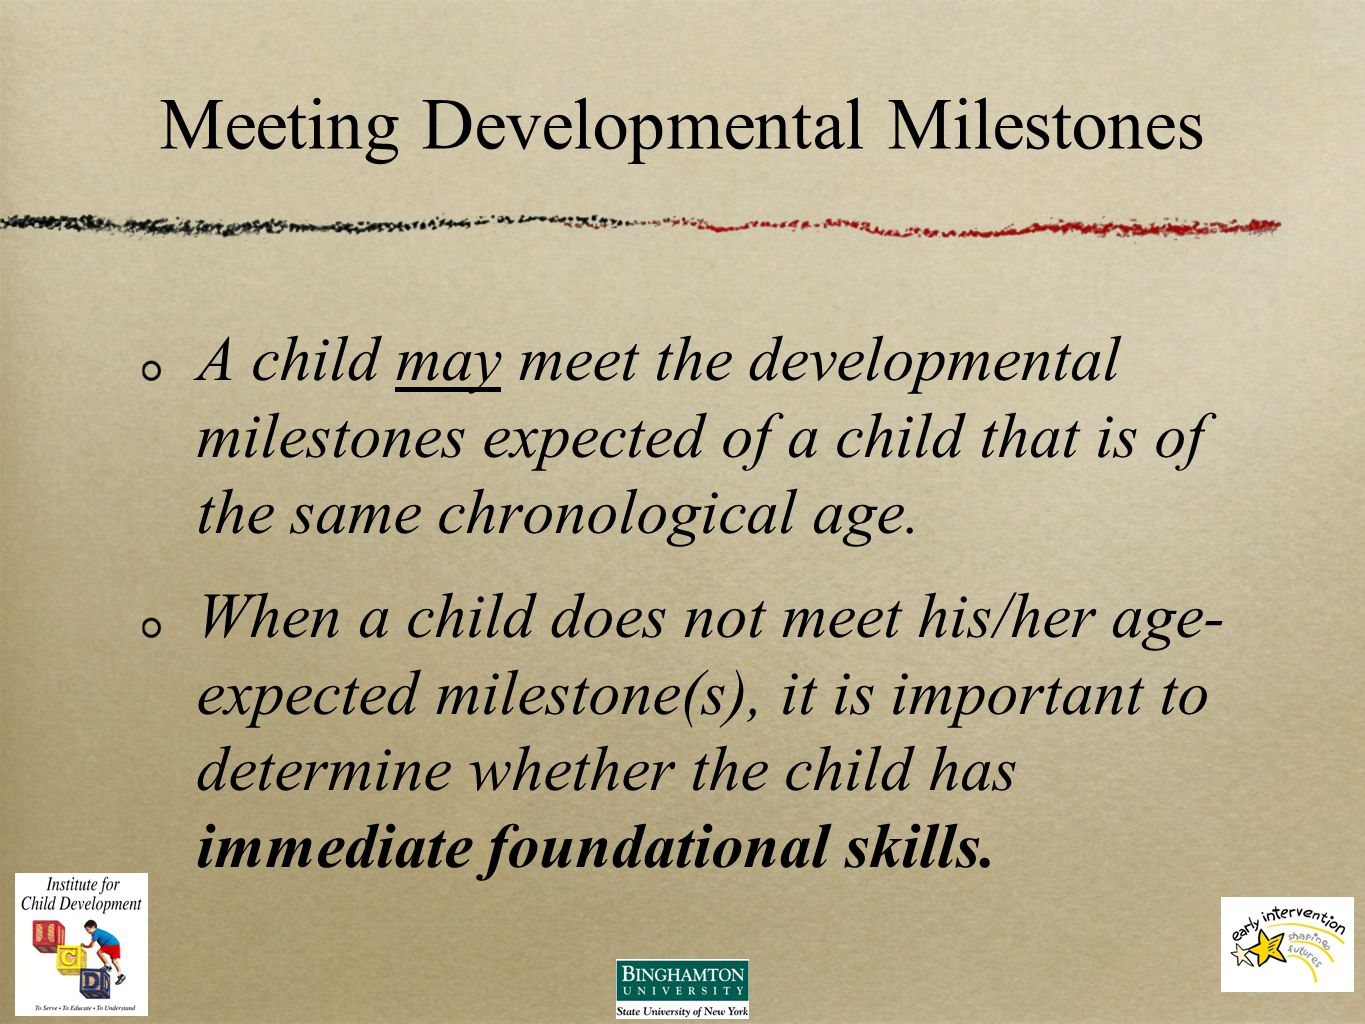 Child and family outcomes chapter 7 developmental milestones chart meeting developmental milestones a child may meet the developmental milestones expected of a child that is altavistaventures Gallery